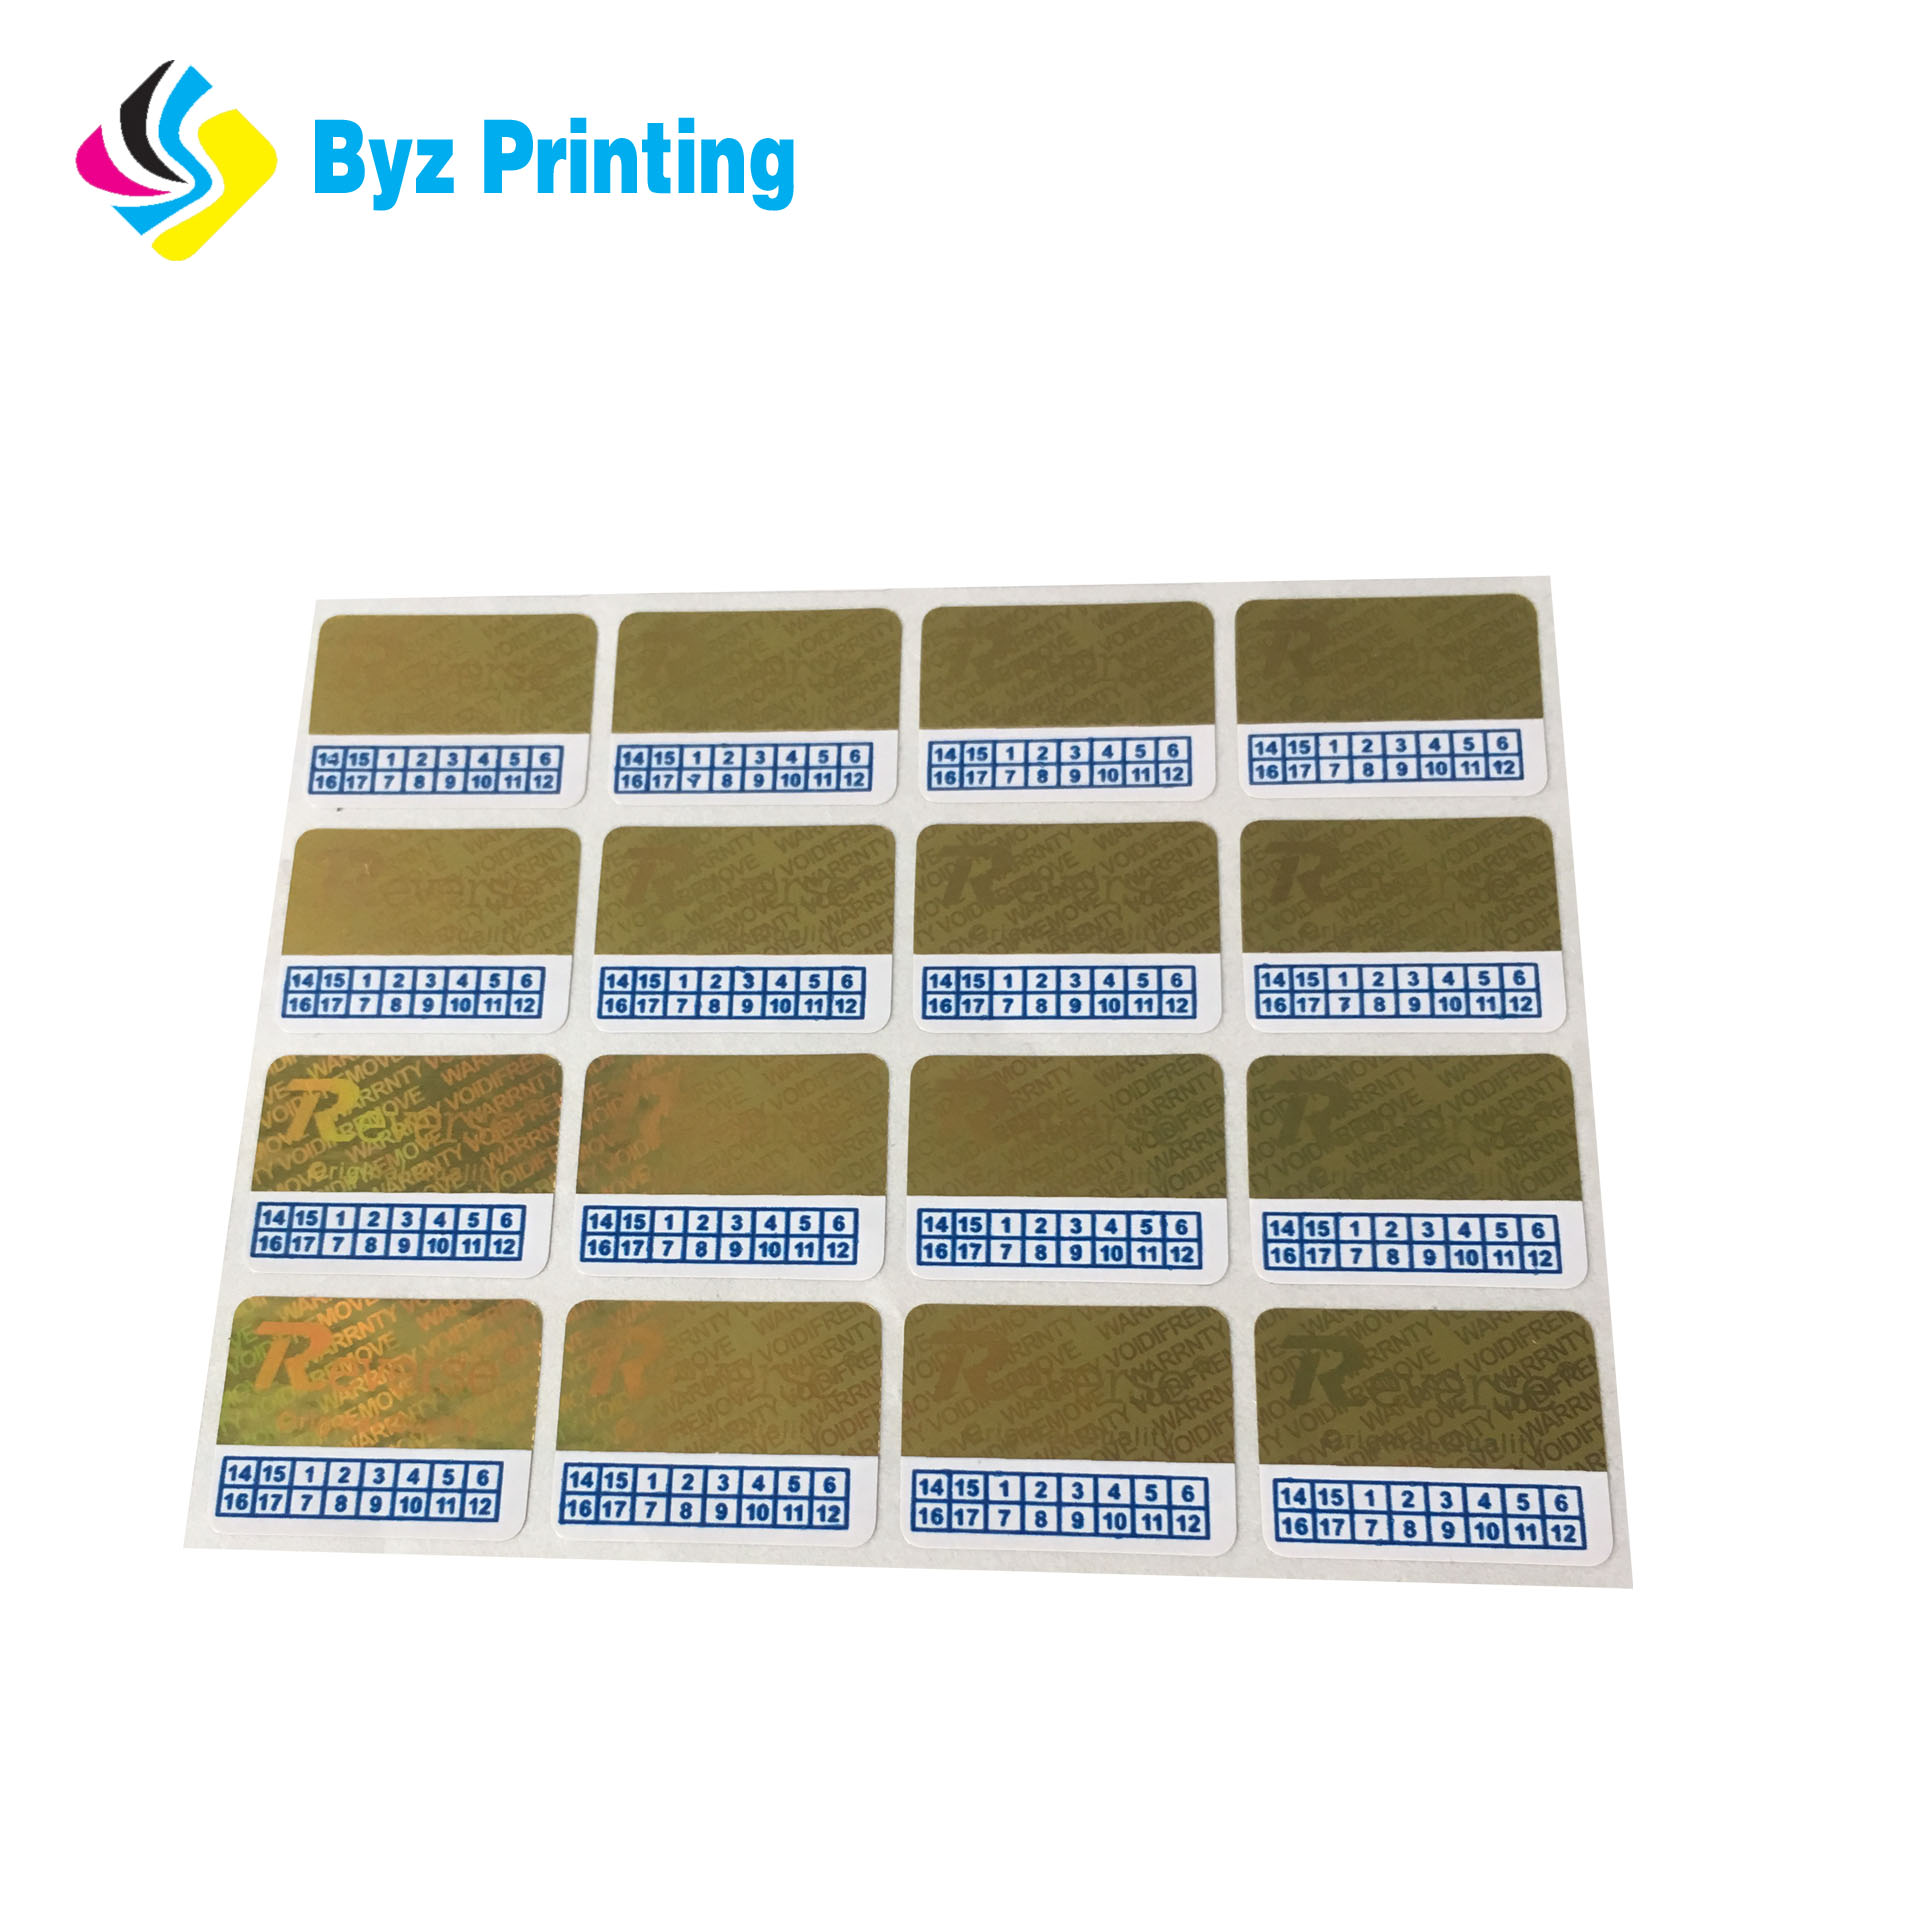 Custom gold ink printed transparent warranty void stickers gold ink company logo printed round clear security void vinyl labels